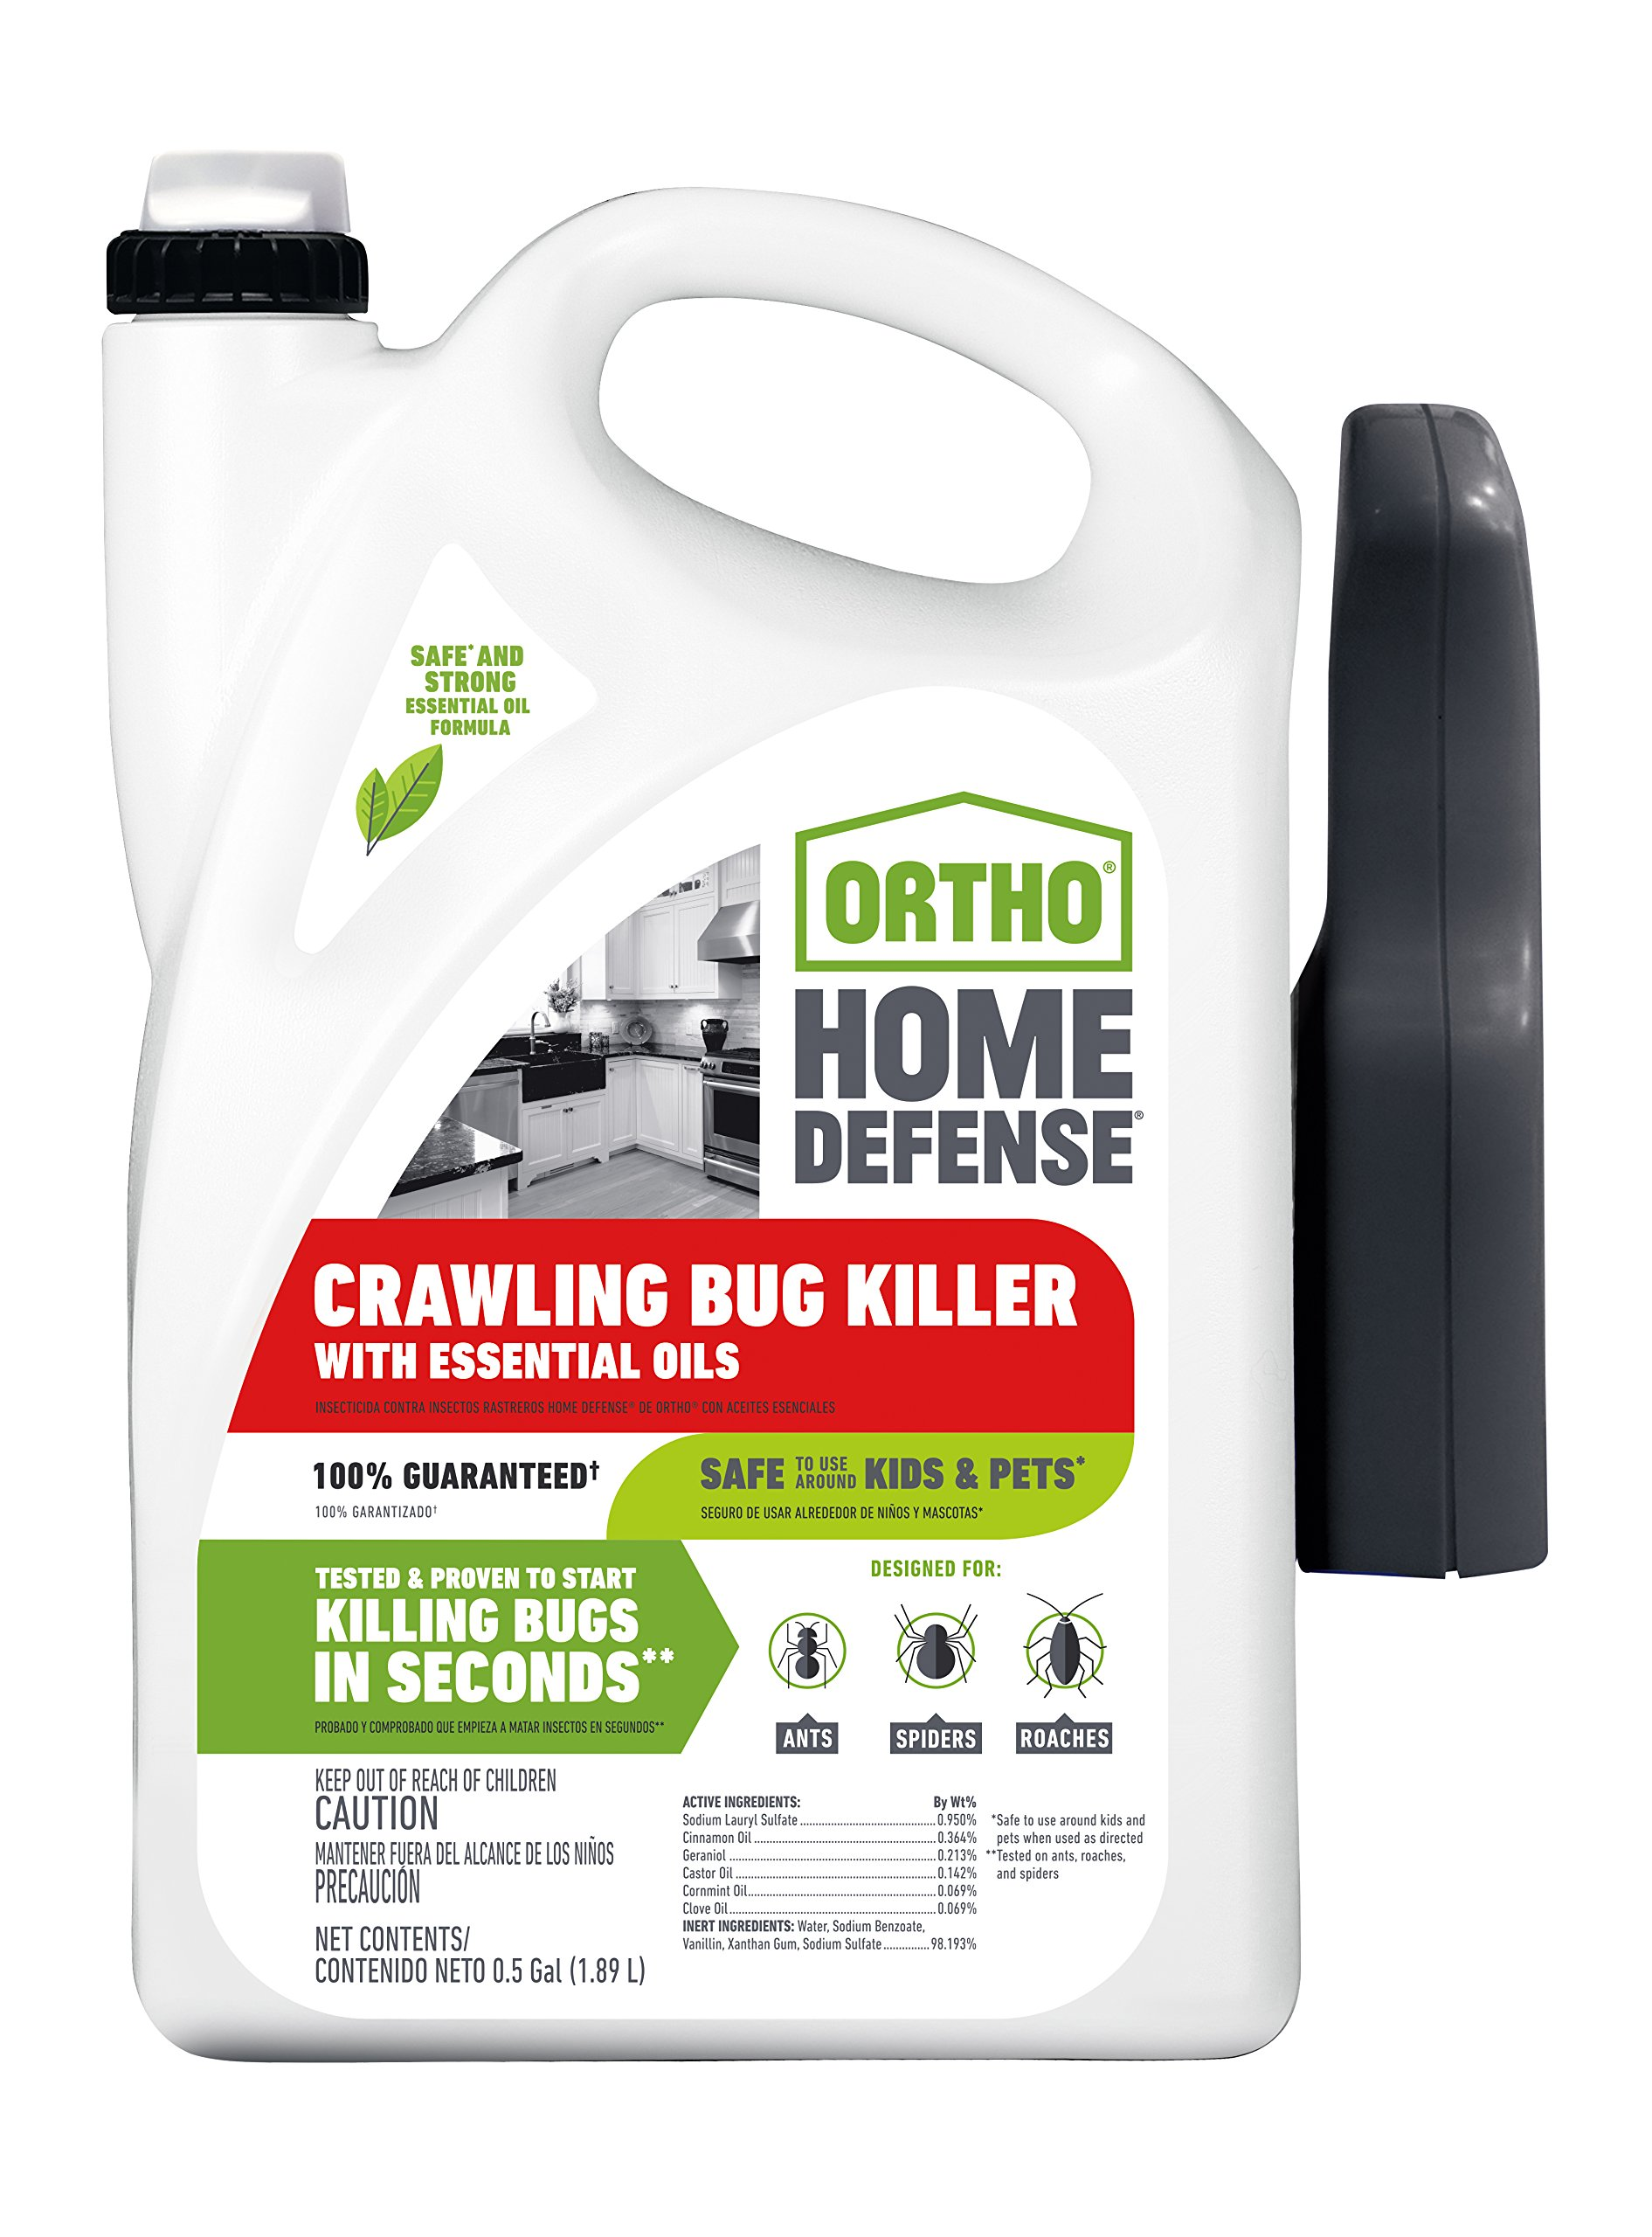 Ortho Home Defense Crawling Bug Killer with Essential Oils RTU Trigger 0.5 GAL